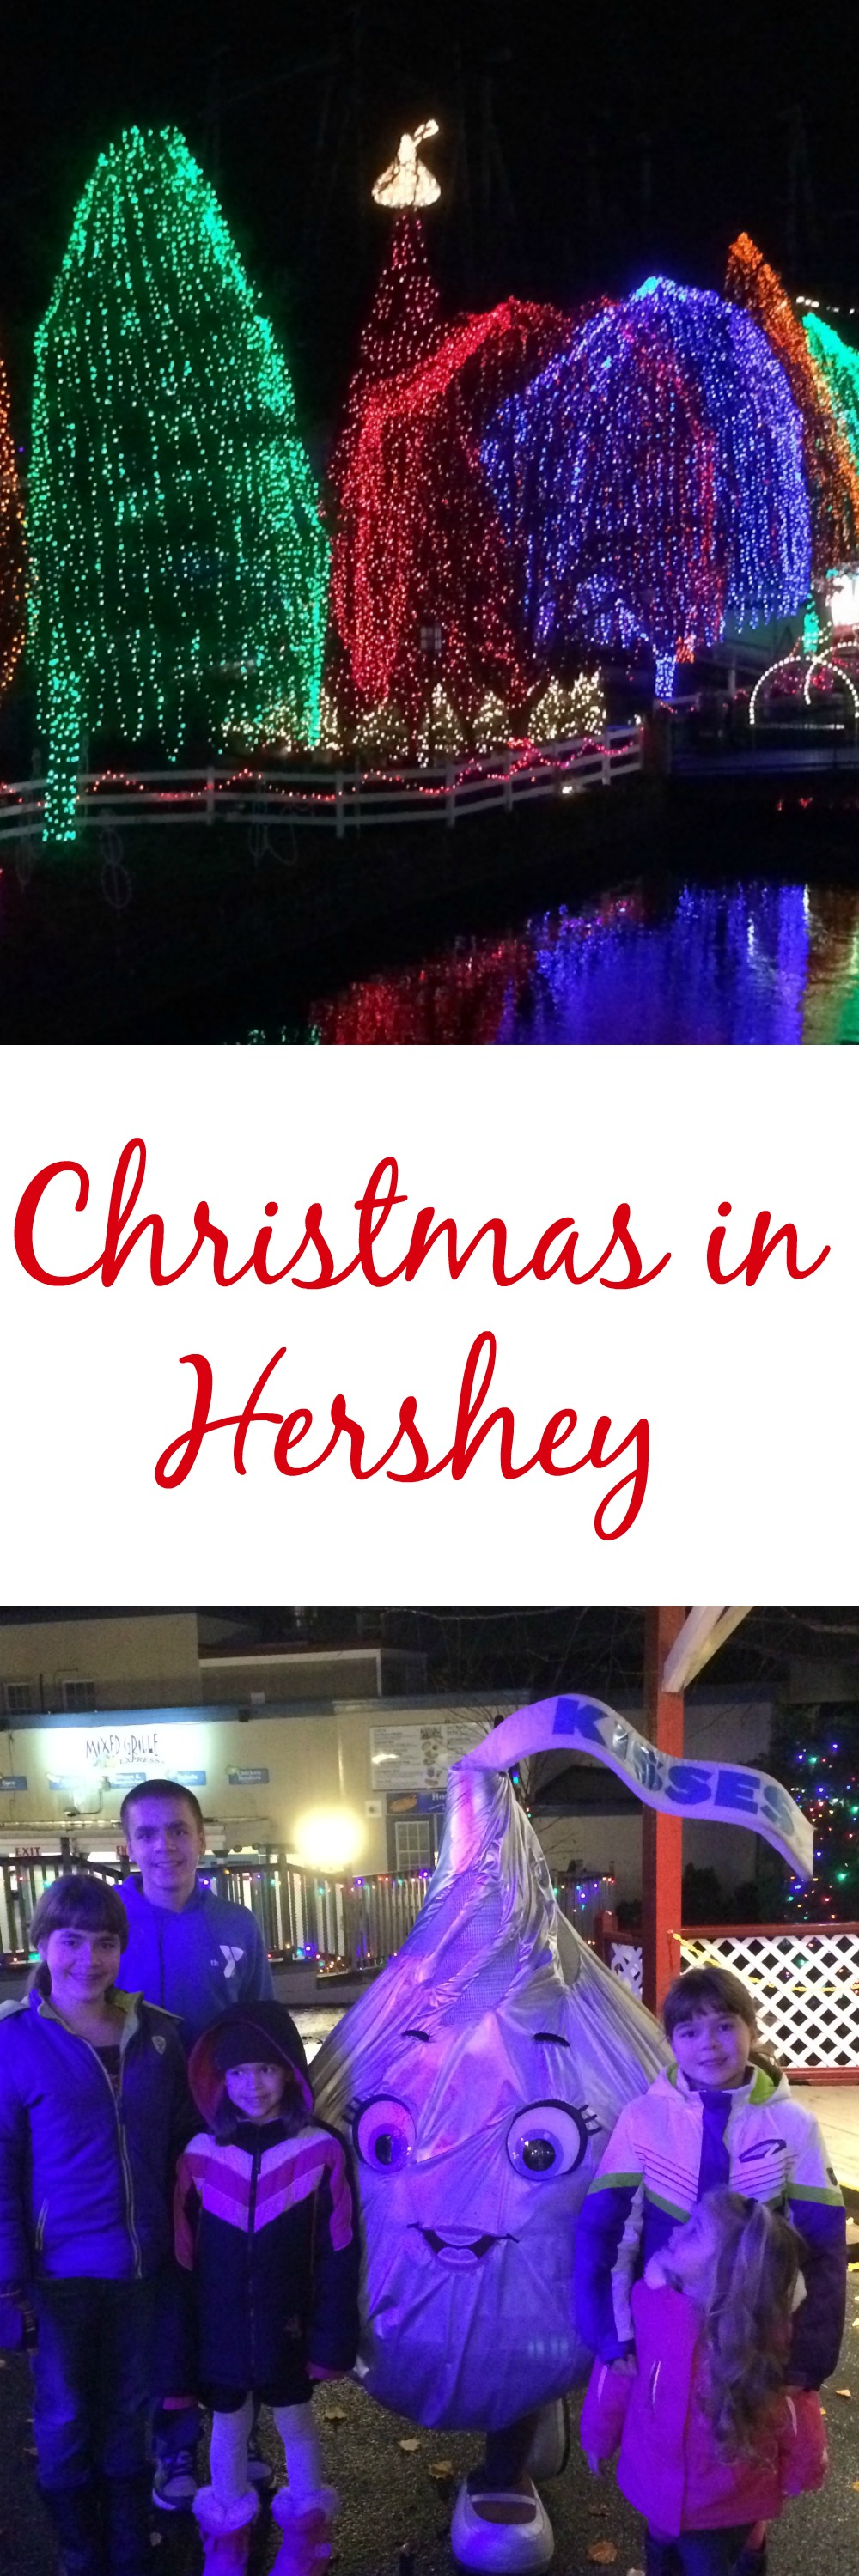 Christmas in Hershey is a great way to kick off the Holiday season. It is a family travel tradition that the while family looks forward to each year. #Sweetestmoms #ad